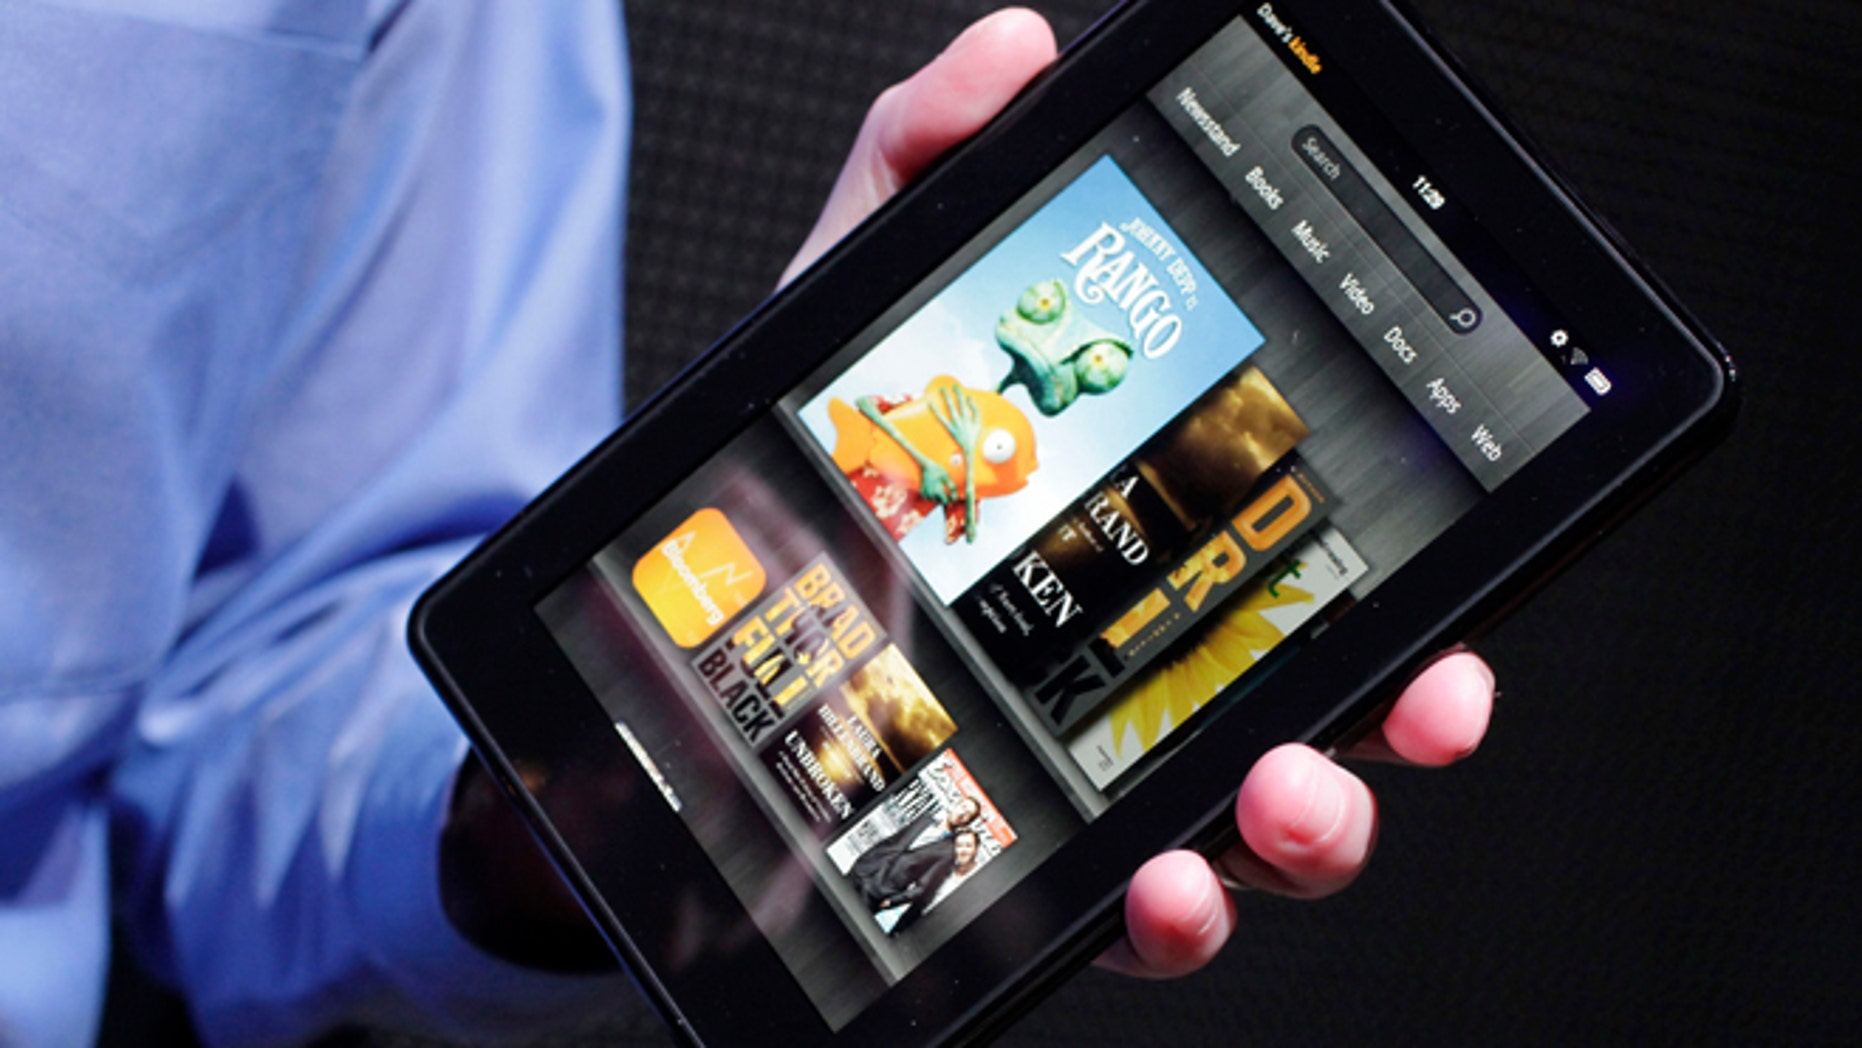 Apple has successfully fended off competitors who have tried to sell tablets in iPad's size range. But last year, Amazon.com figured out how to crack Apple's stranglehold on tablets by making a half-size, no-frills tablet. The result was the Kindle Fire, which sells for $199 -- basically, the cost of production. Amazon has sold millions of them.